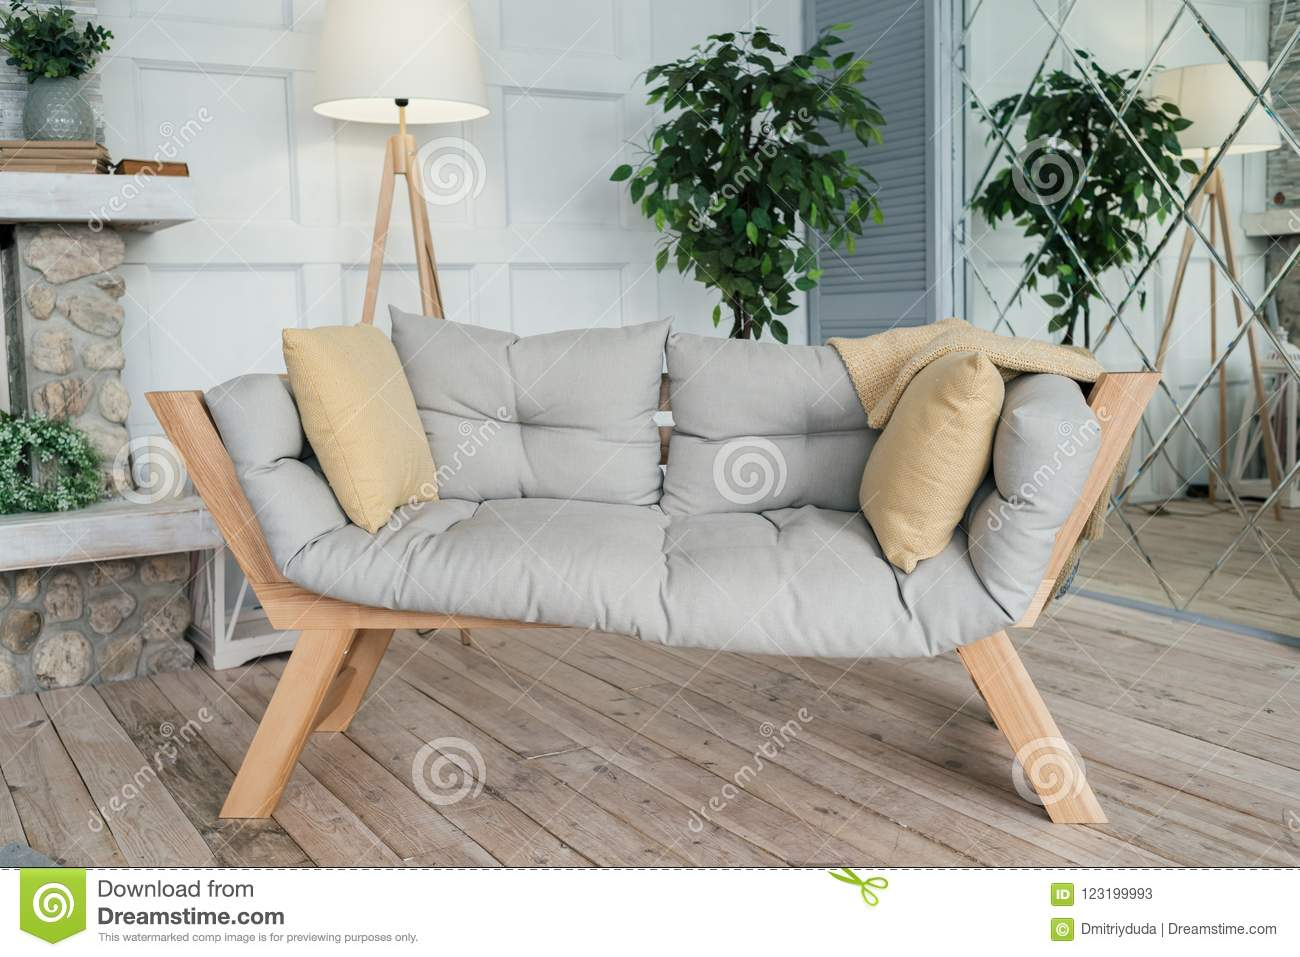 Picture of: Wooden Bench With Cushions For Relaxing Interior Living Room Stock Image Image Of Hotel Decoration 123199993